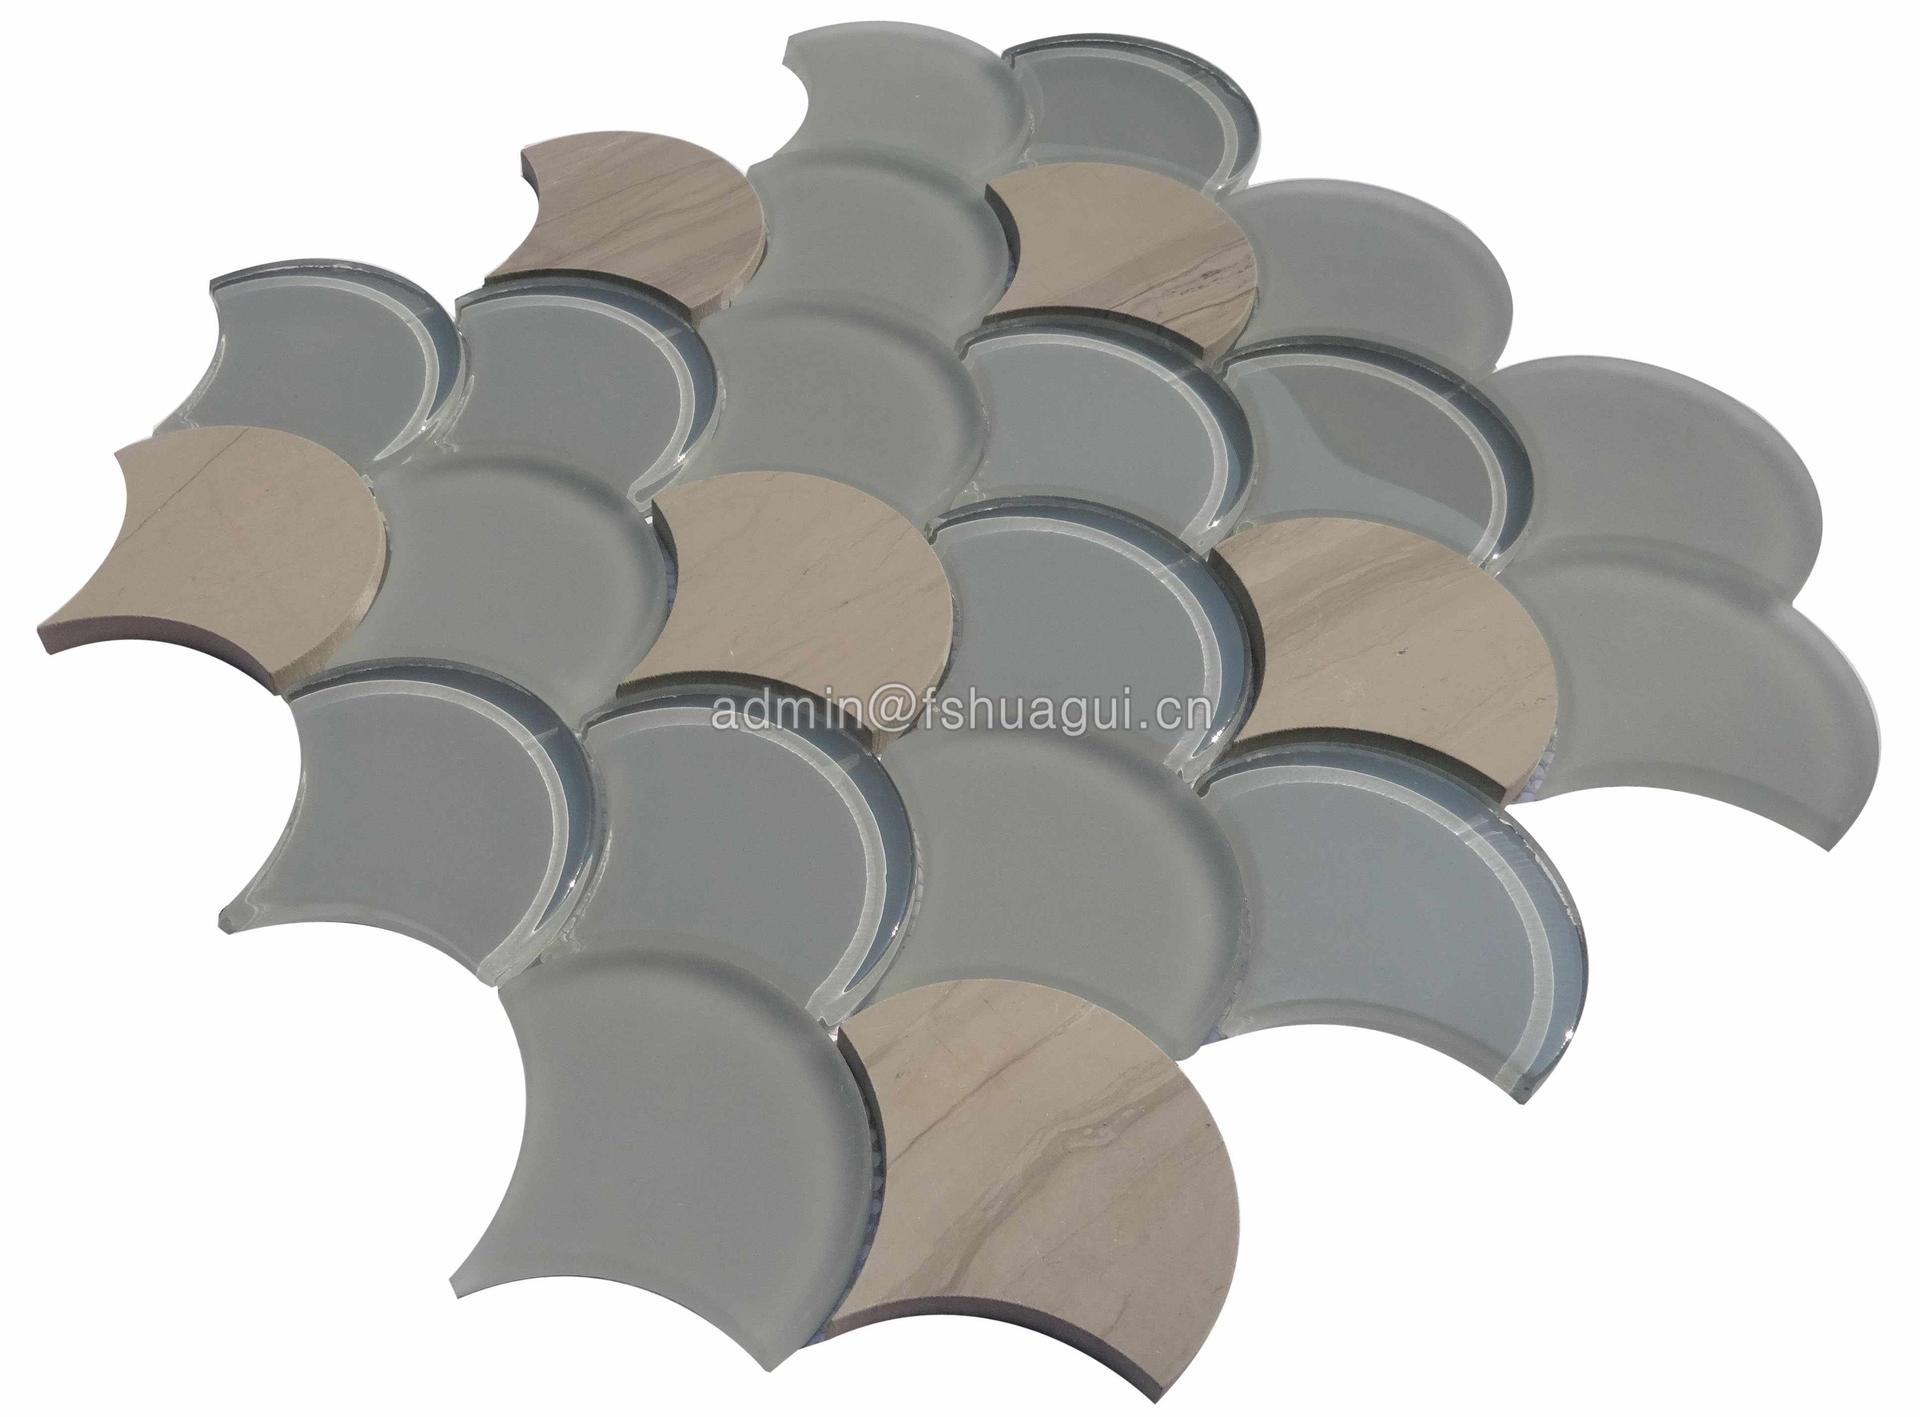 2019 New fan scale design glass mixed stone mosaic tile